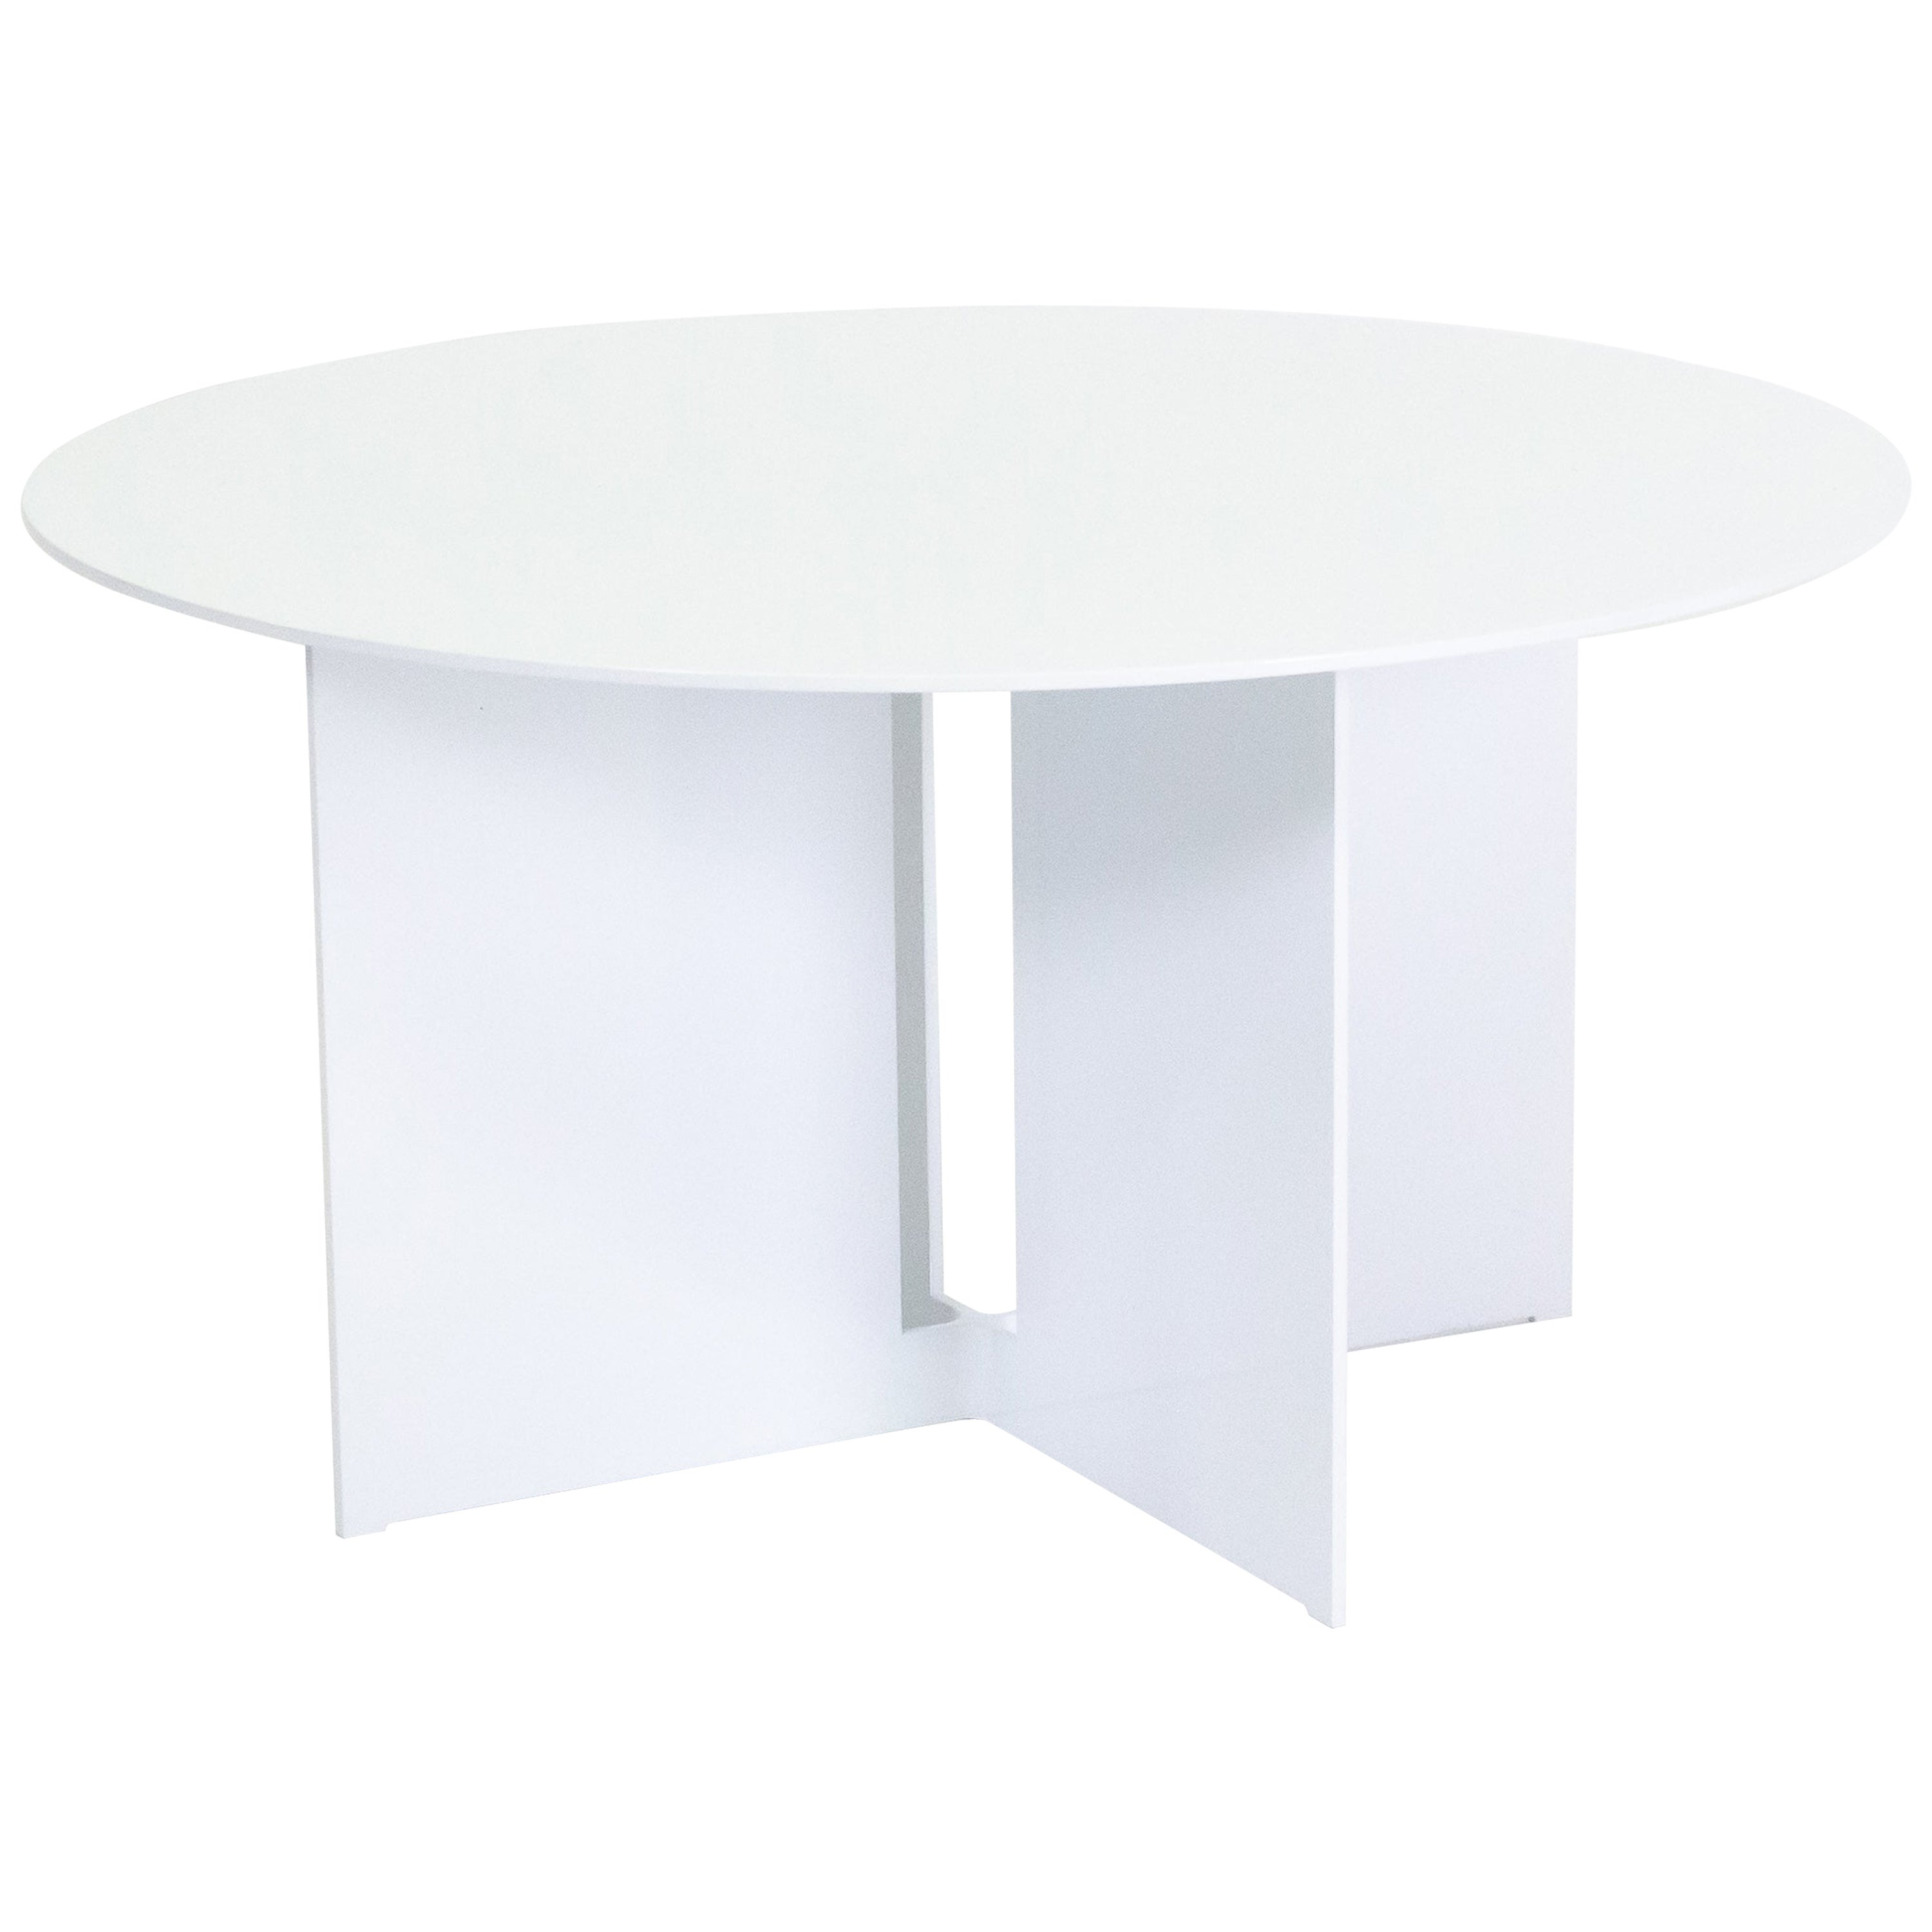 Mers Coffee Table in Aluminum Powdercoat White